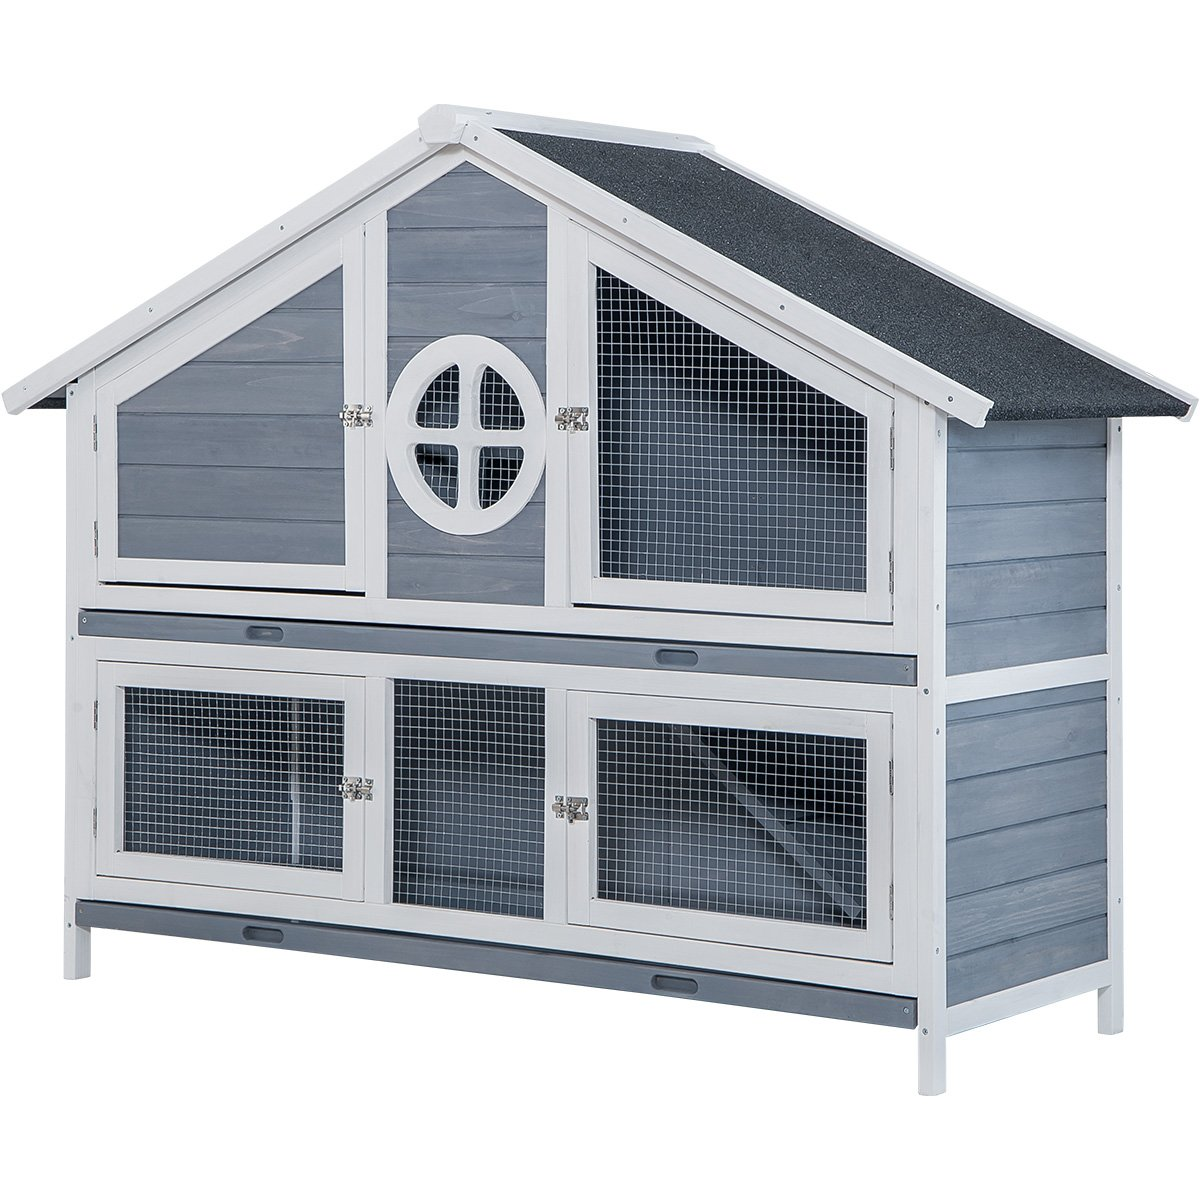 LZ LEISURE ZONE Rabbit Hutch Pet Bunny Cage Wood Small Animals House for Outdoor/Indoor Use (Grey+White)